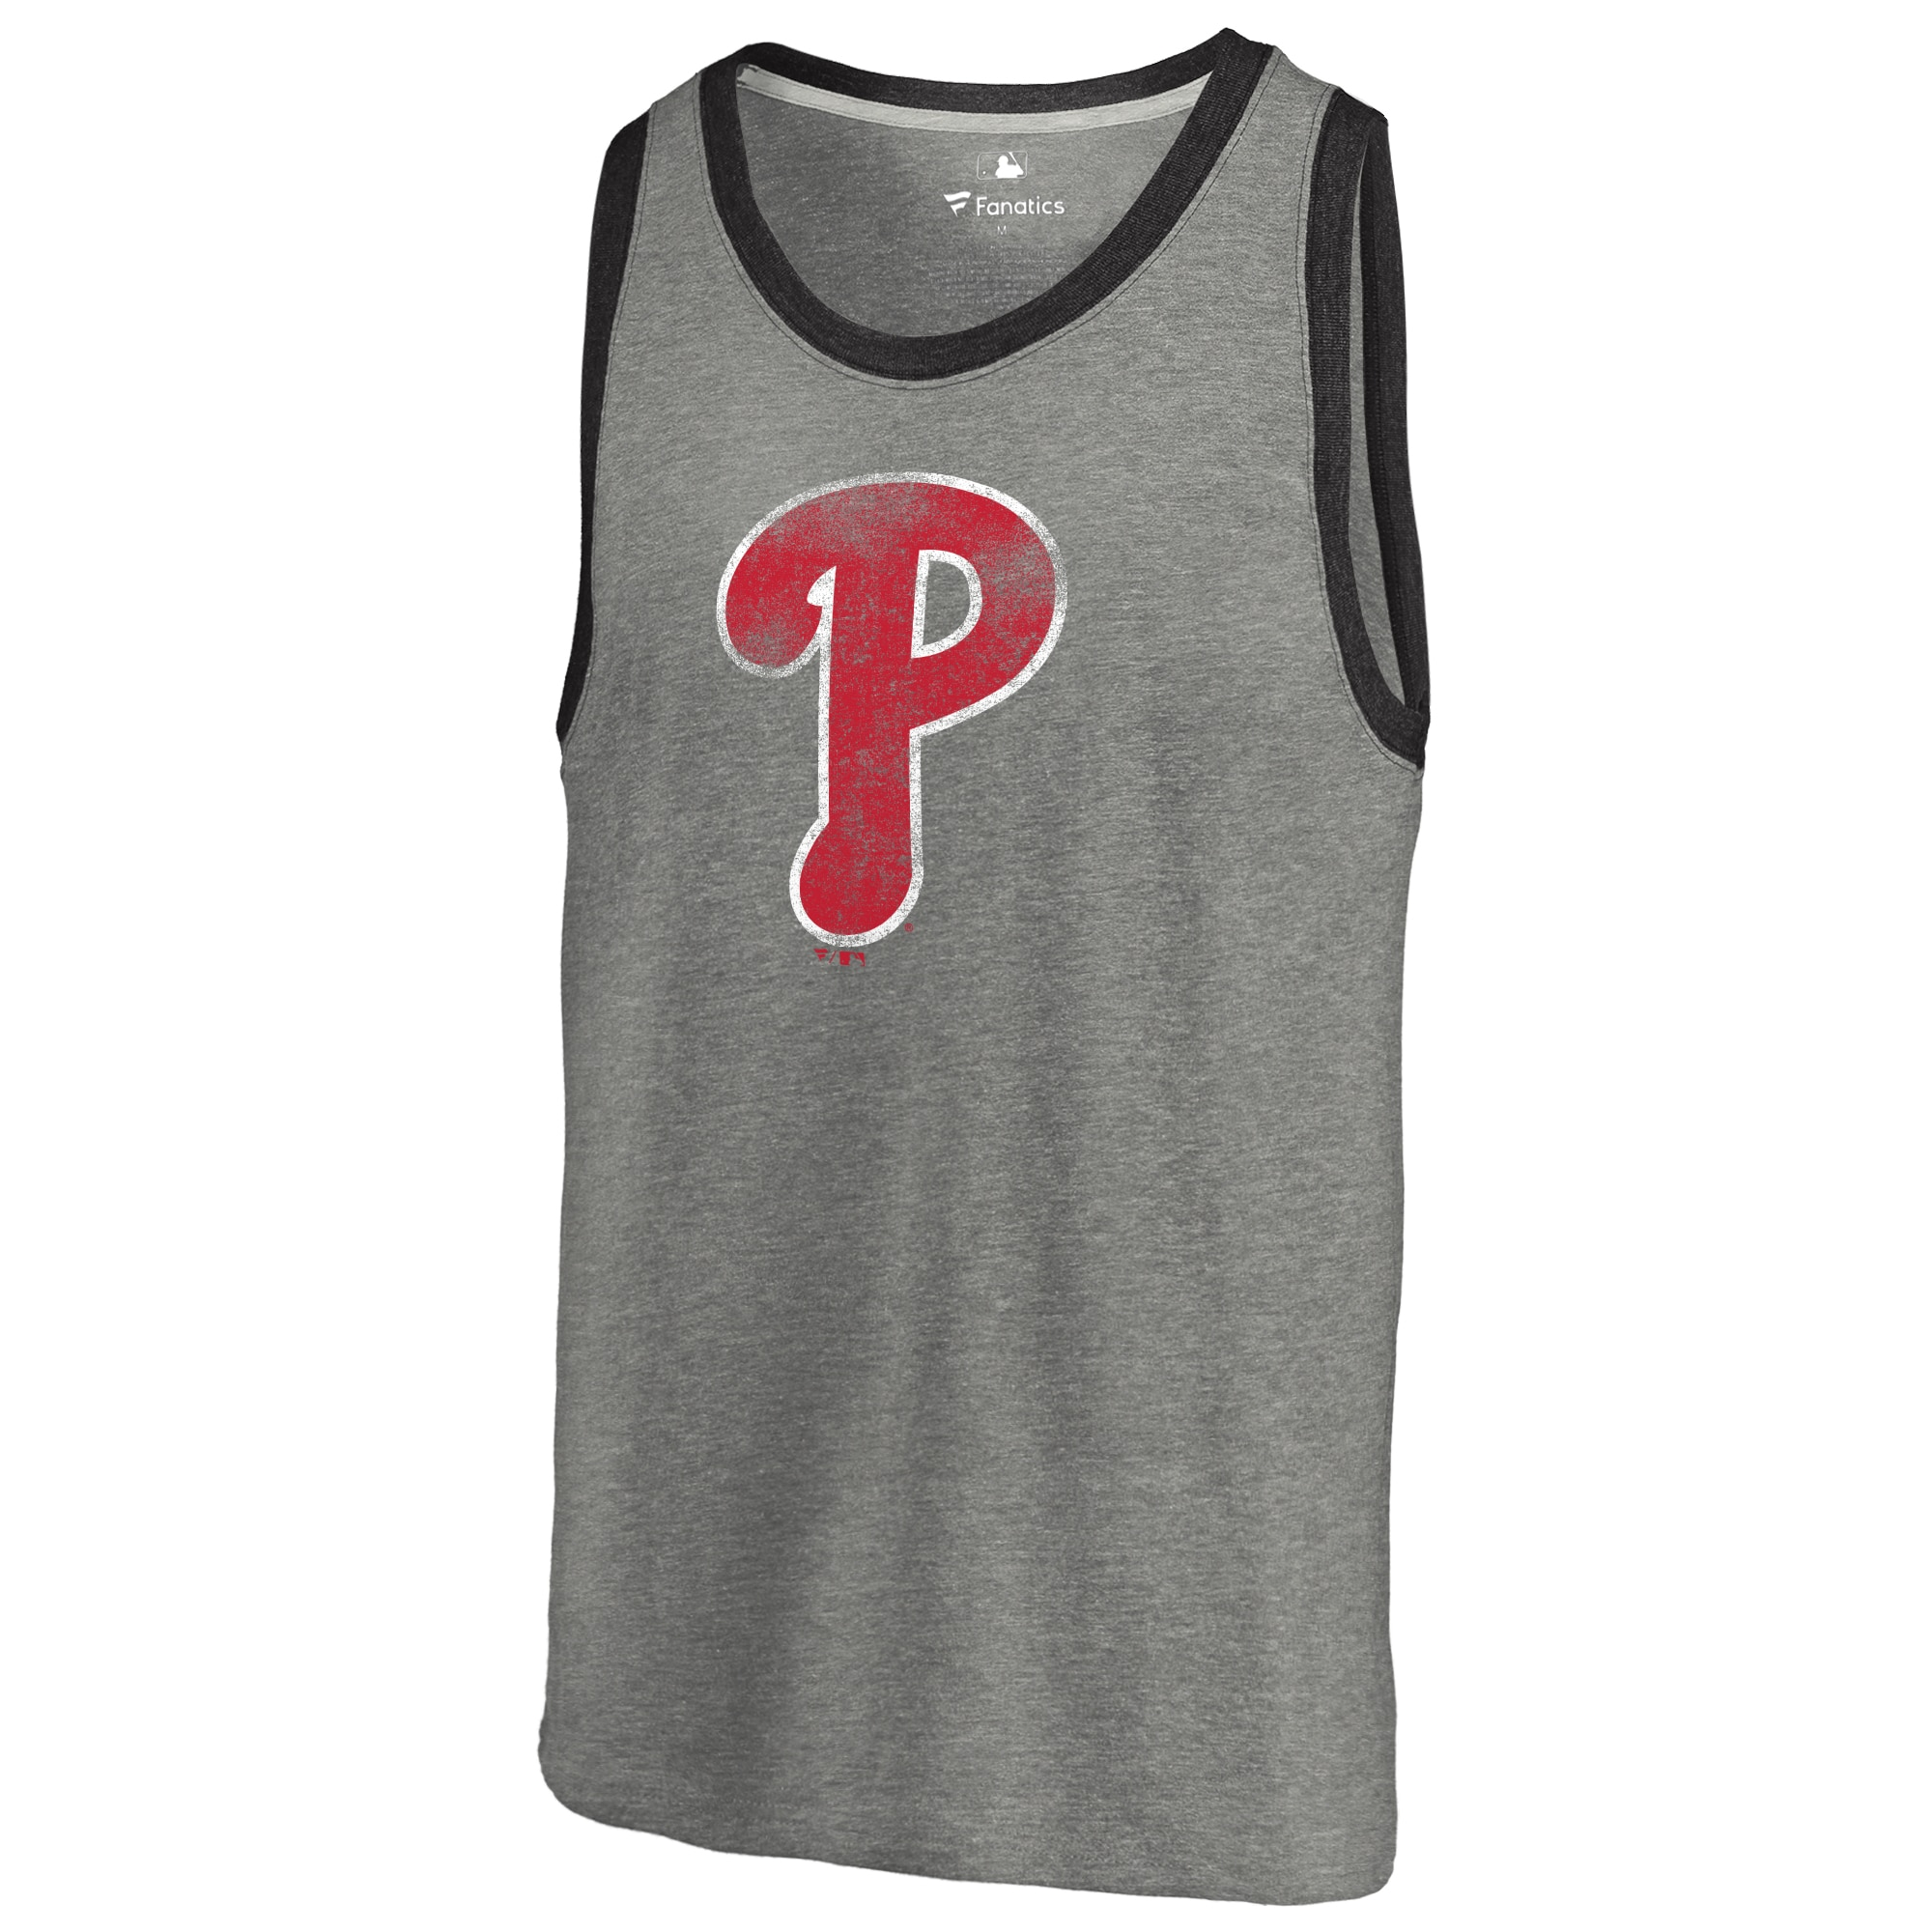 Philadelphia Phillies Distressed Team Tank Top - Ash